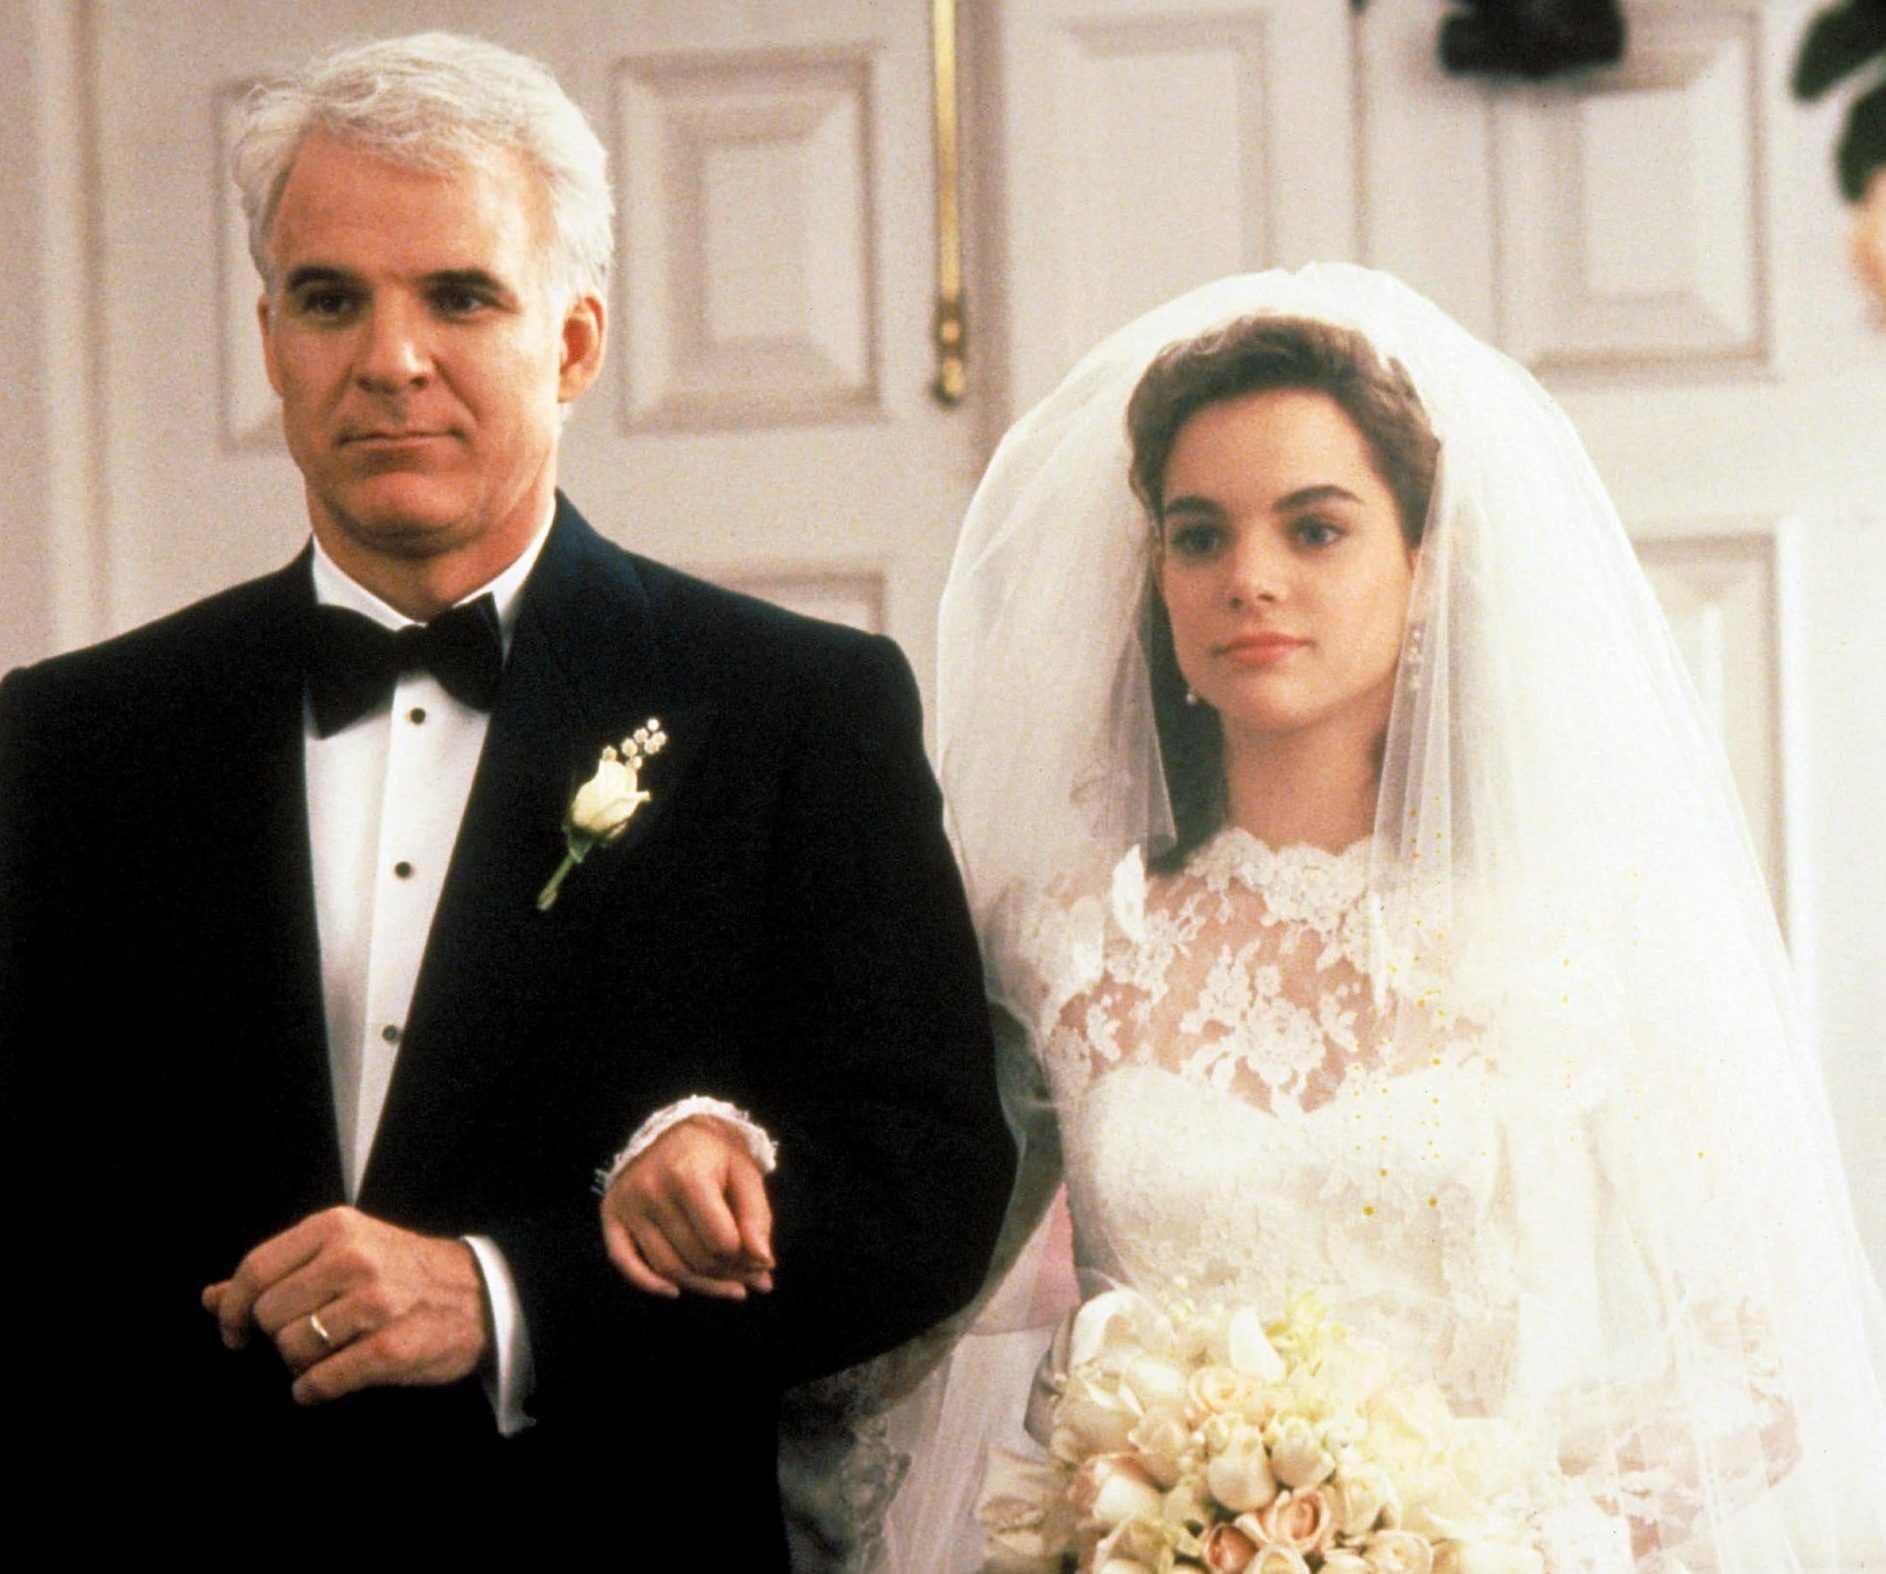 ed5d476e 9077 4618 8138 8862f3529a46 d father bride dvd 31 scaled e1618221988471 10 Things You Might Not Have Known About Andy Garcia